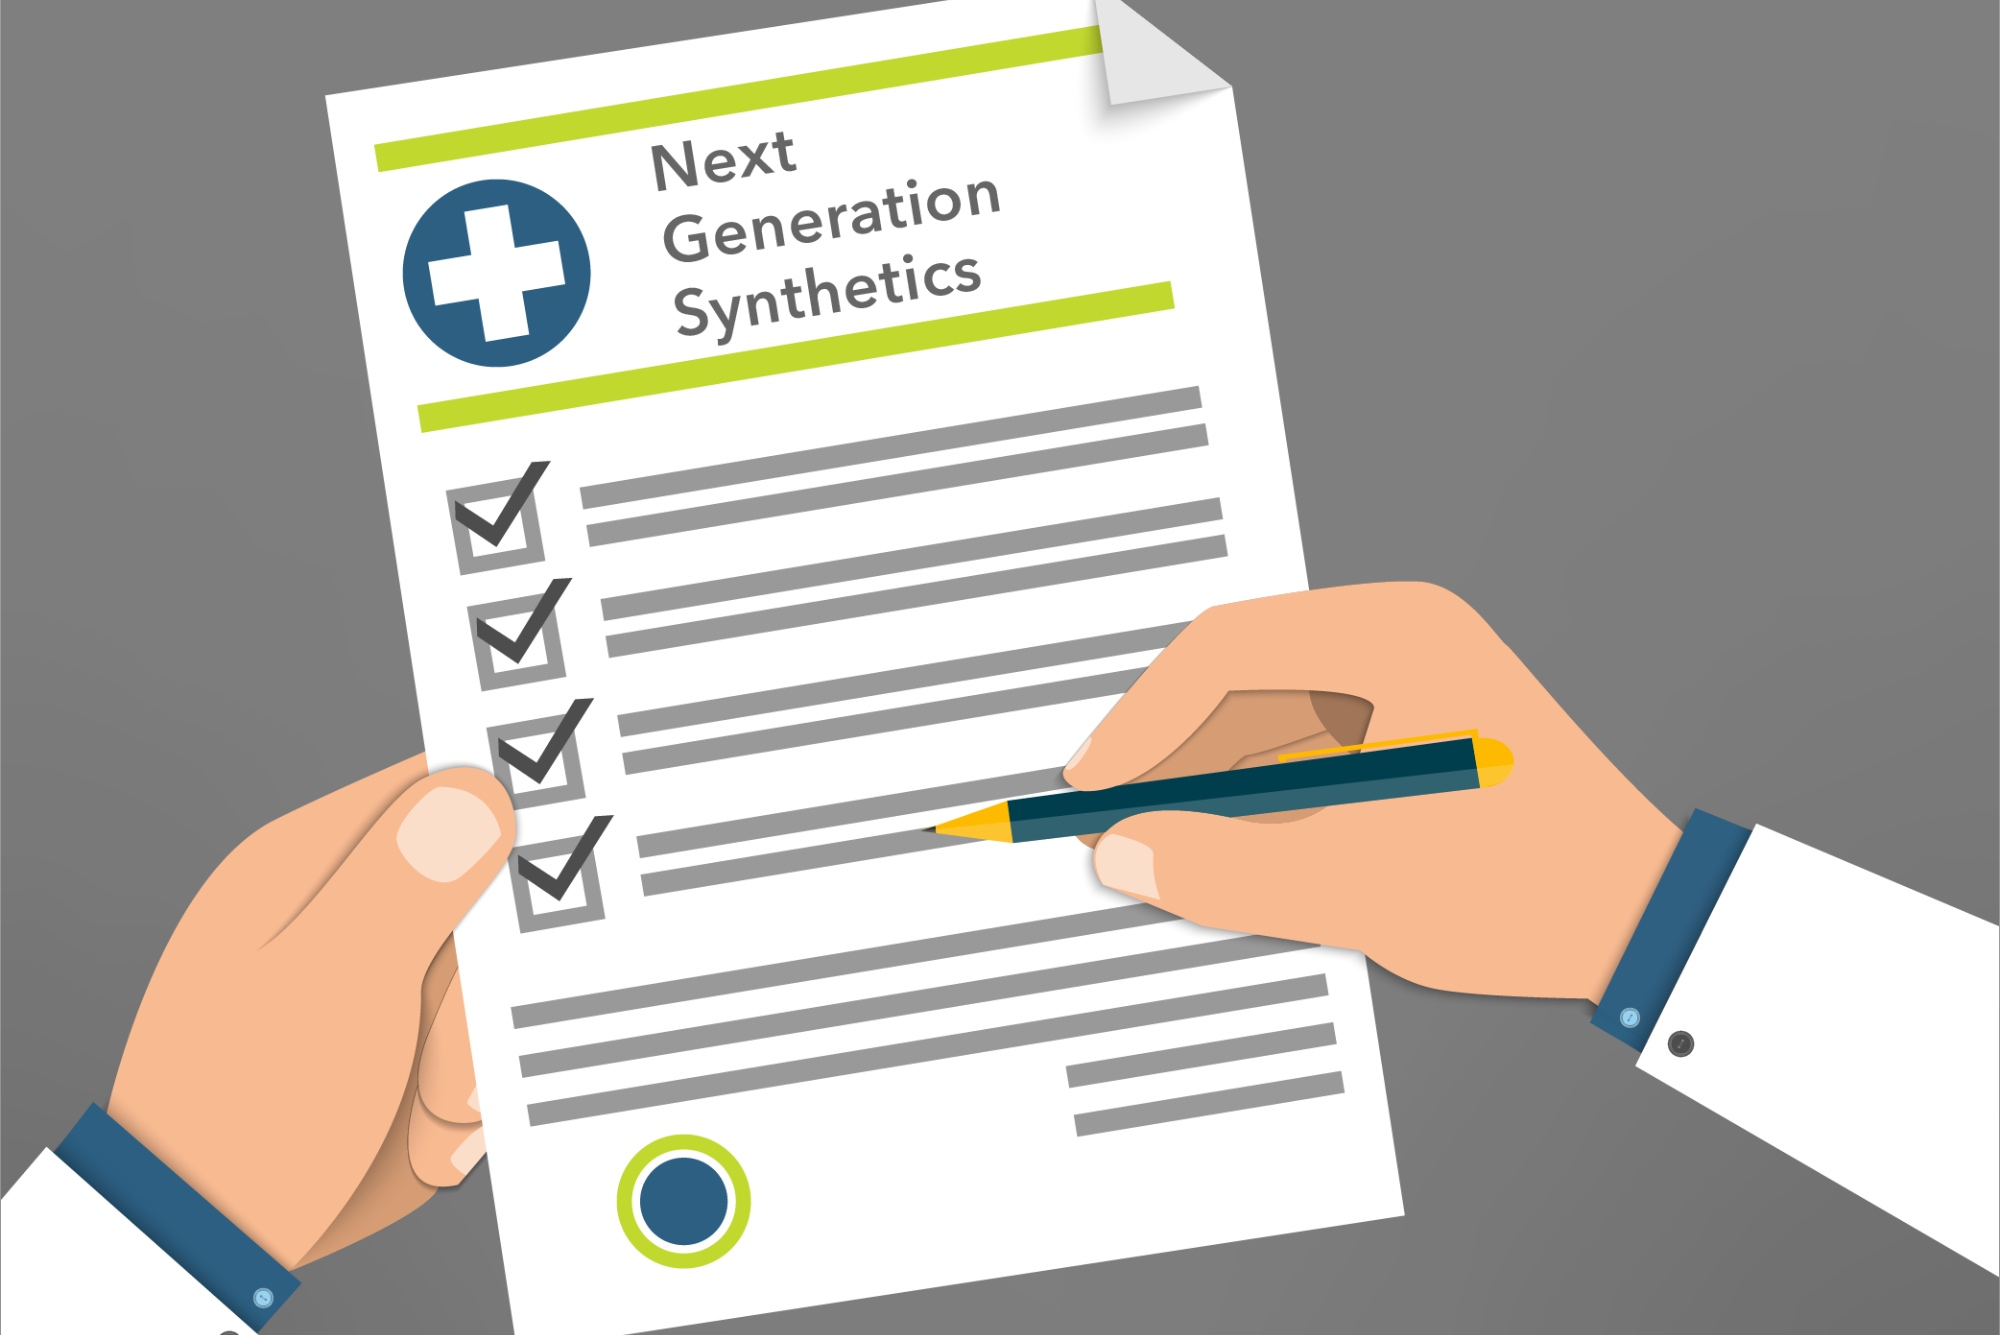 Doctor Reviews Checklist Of Benefits Of Next Generation Synthetic Bone Grafts.